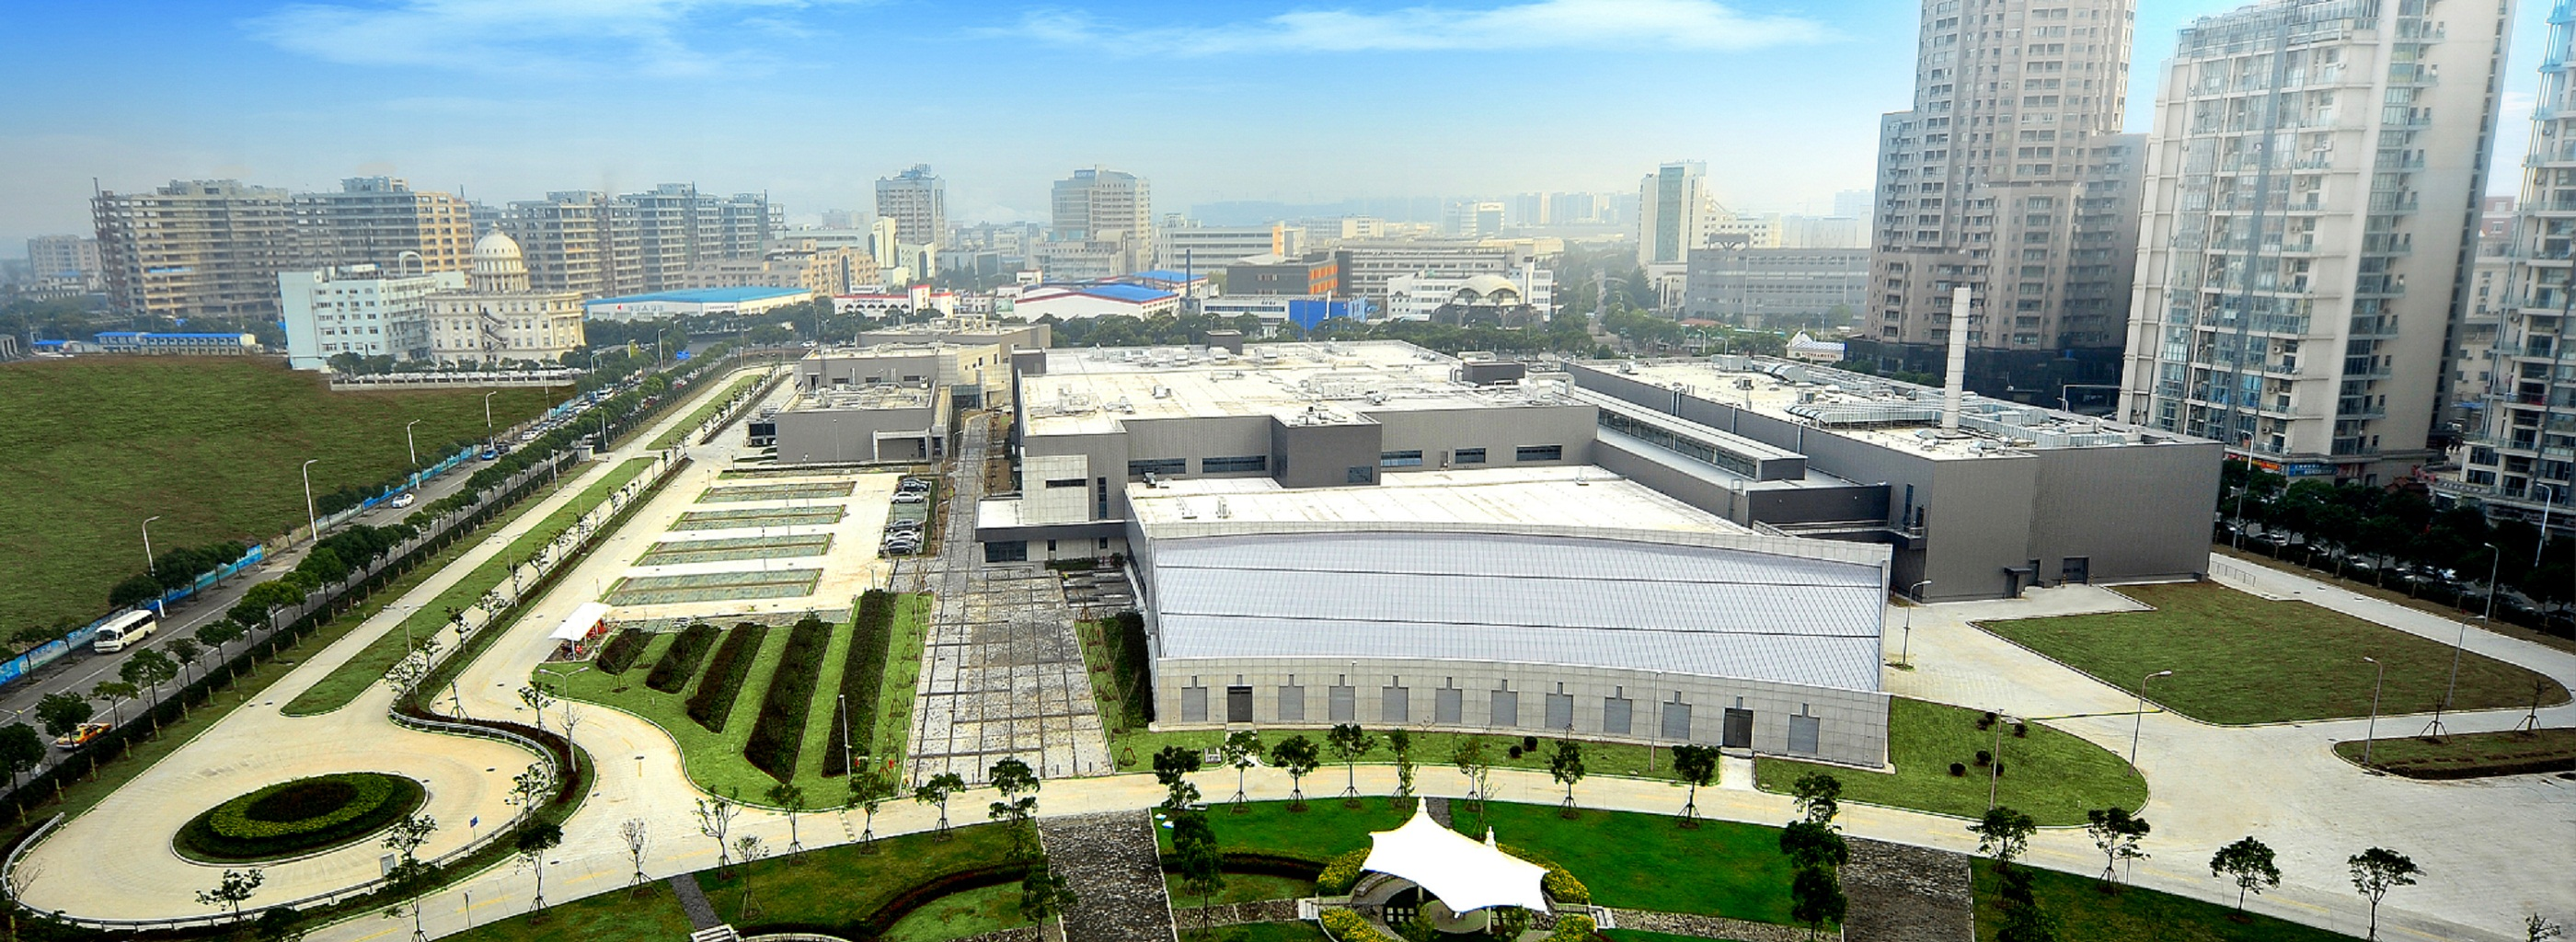 Gm china advanced technical center receives leed silver in shanghai has been awarded silver certification by the us green building councils leadership in energy and environmental design leed program 1betcityfo Image collections